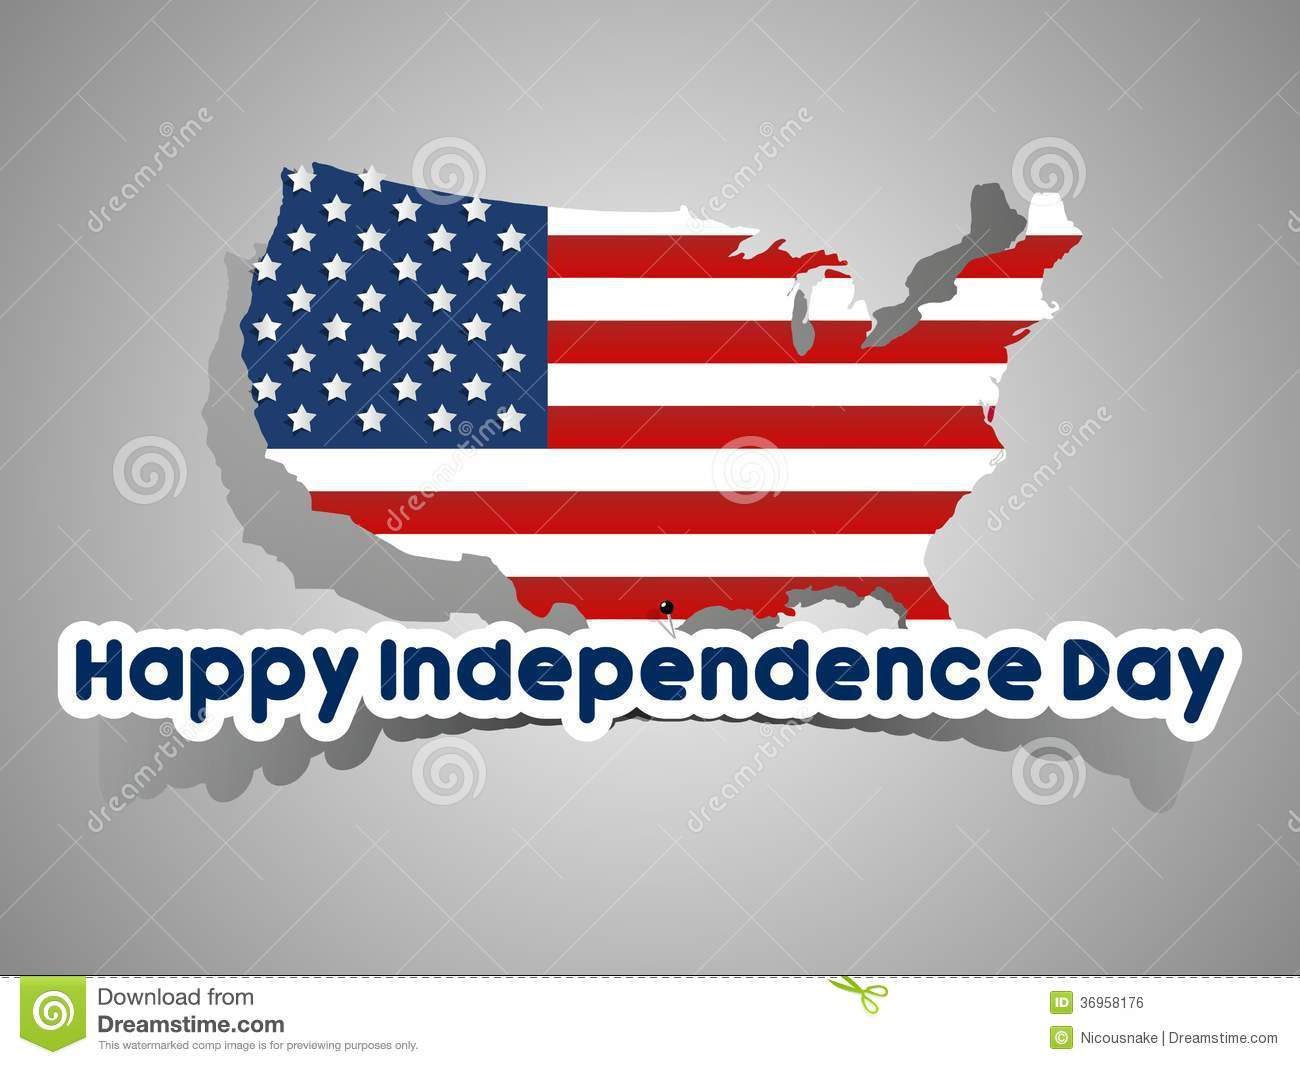 What is the date of independence day in Sydney